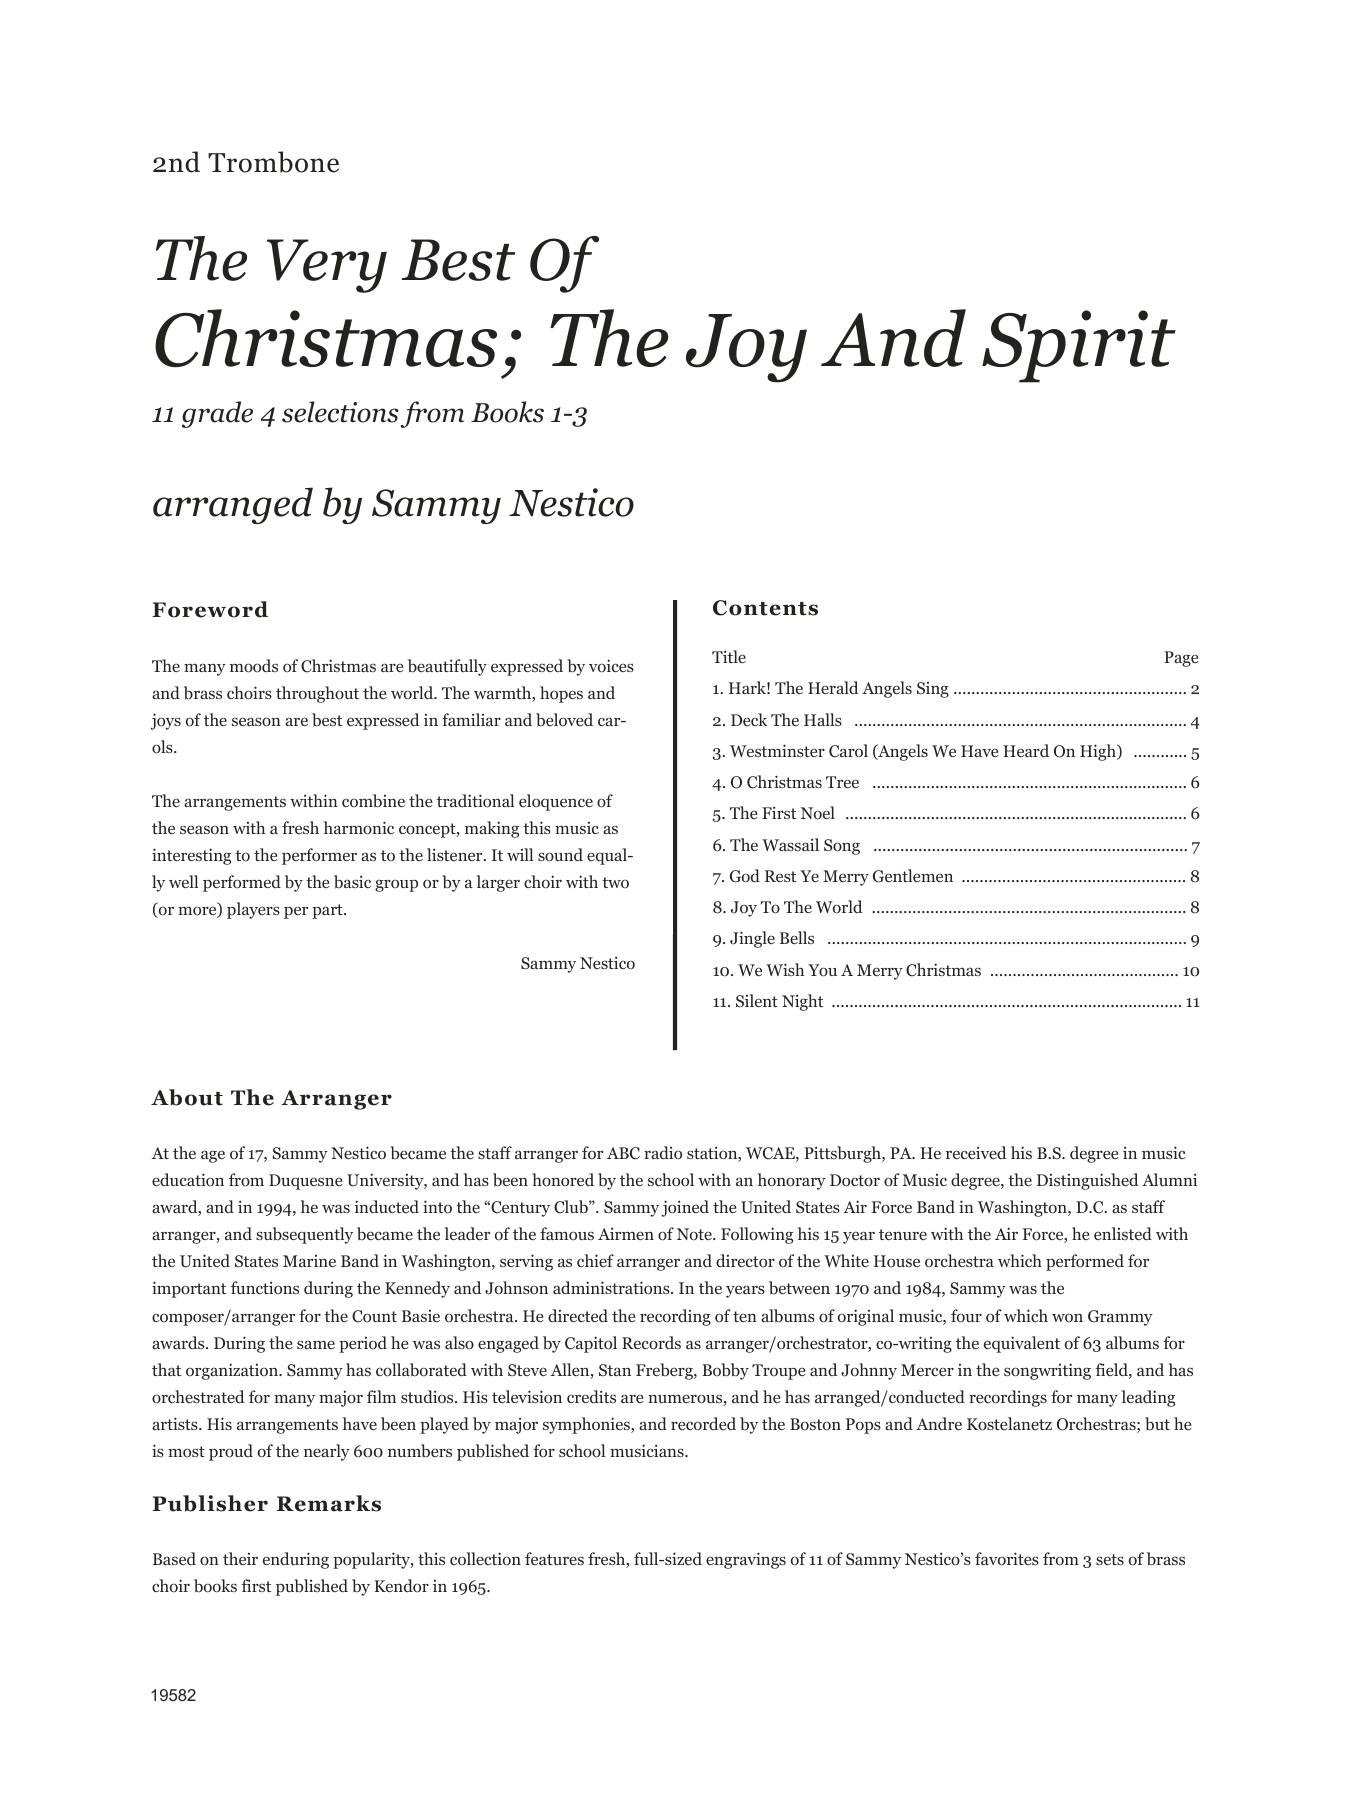 Very Best Of Christmas; The Joy And Spirit (Books 1-3) - 2nd Trombone Sheet Music